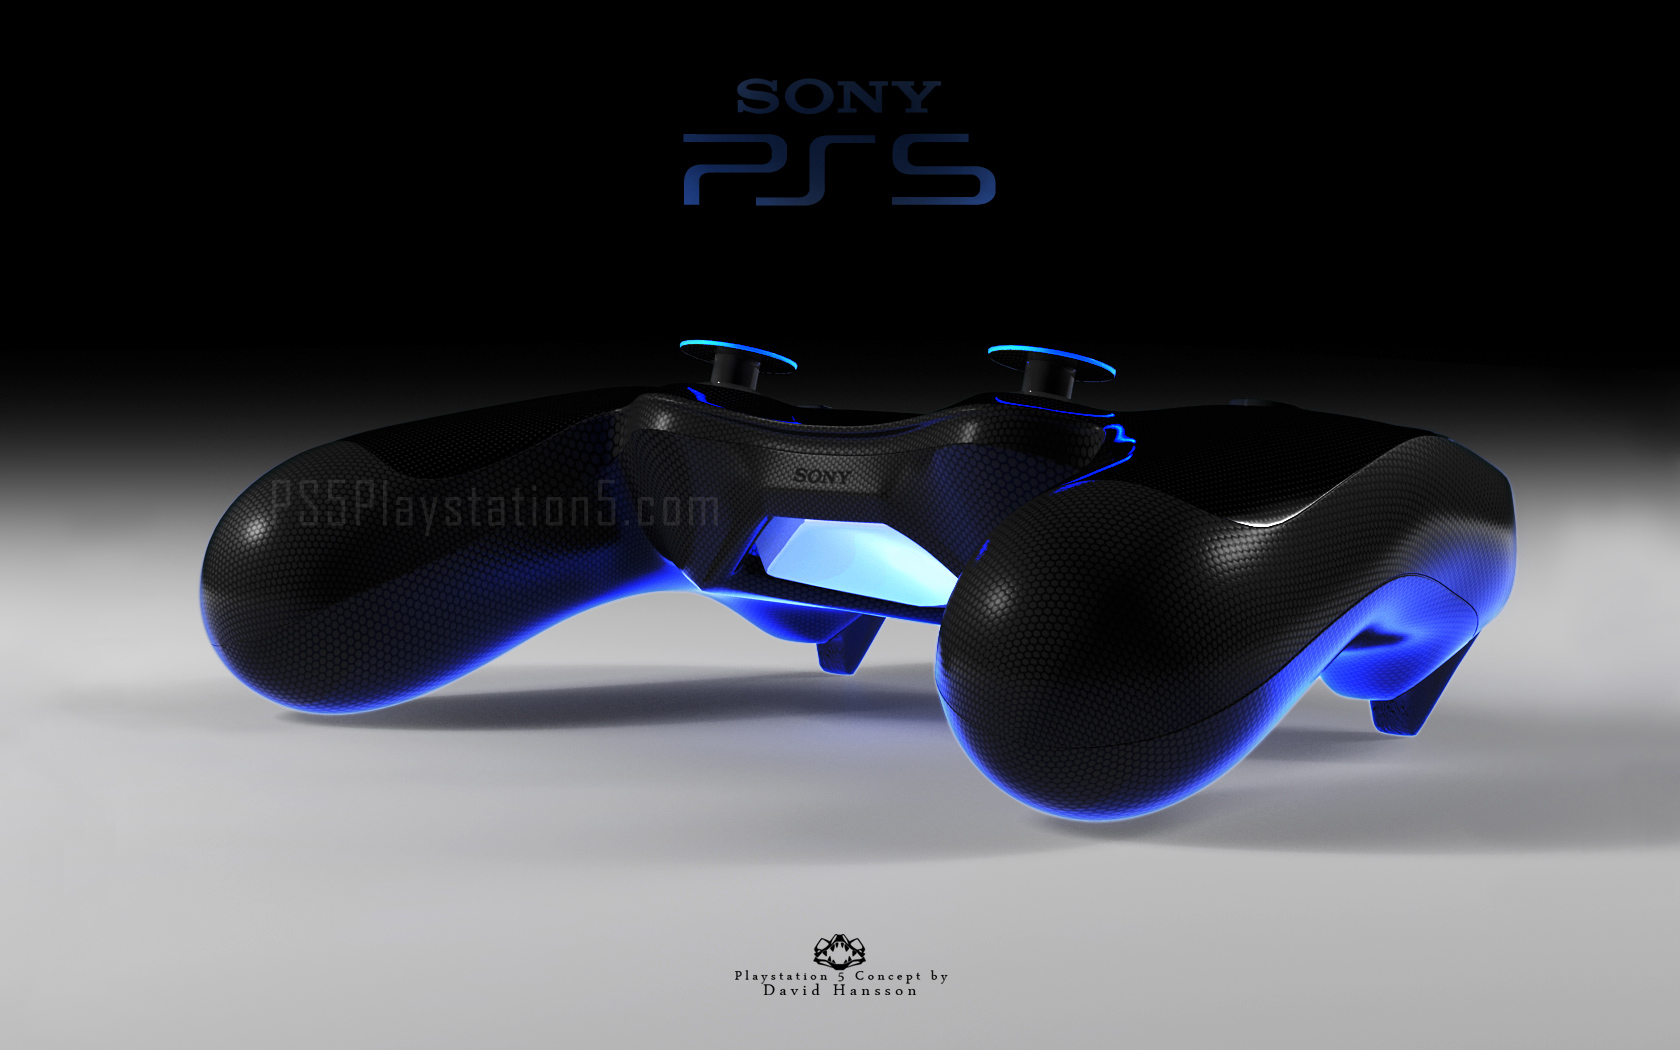 ps 5 price with Ps5 Concepts Playstation 5 on Showthread furthermore Playstation 5 furthermore Sony Playstation5 Ps5console Releasedate Specs as well Xbox 2 Price likewise Ps5 Concepts Playstation 5.